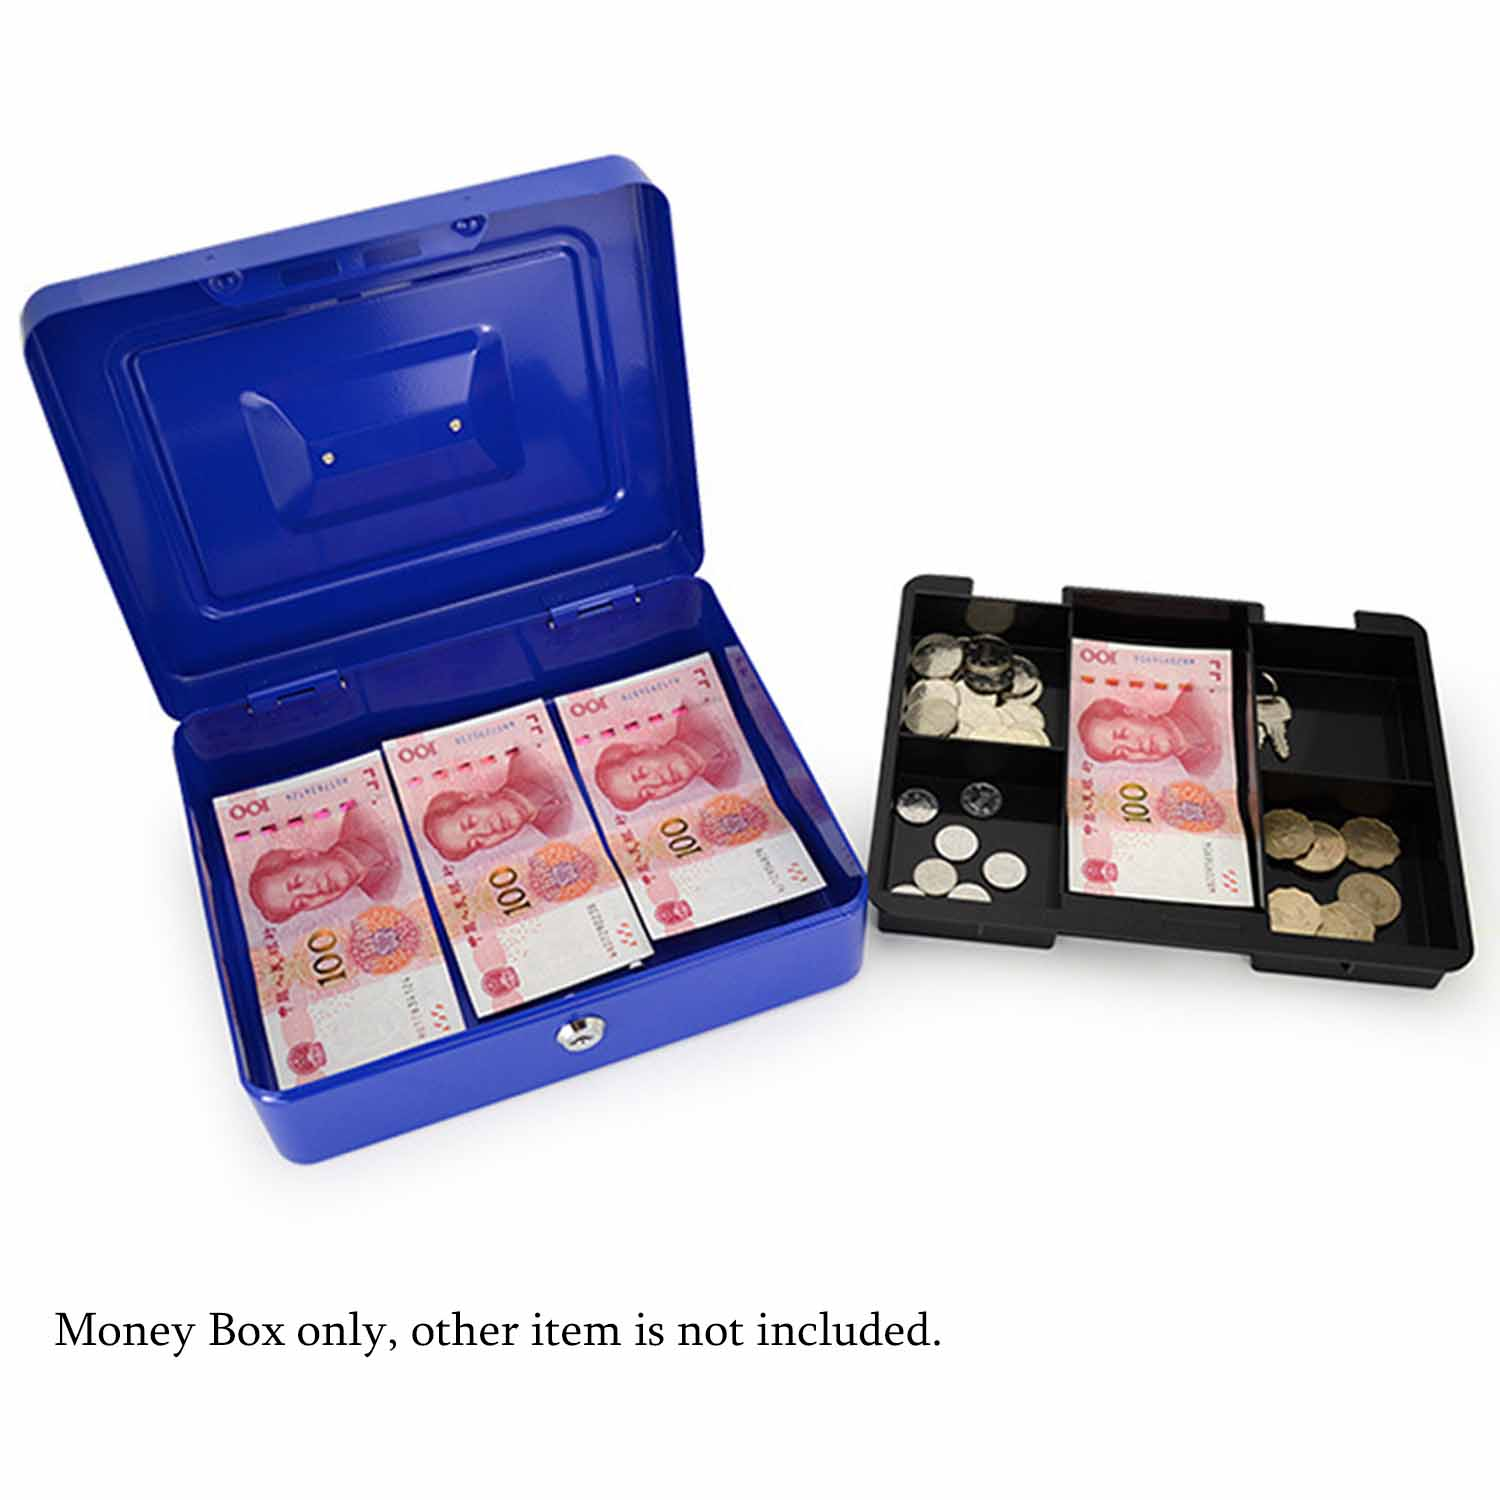 Behokic 10 inch Metal Lockable Cash Coin Money Storage Safe Security Box Holder Suitcase with Lock